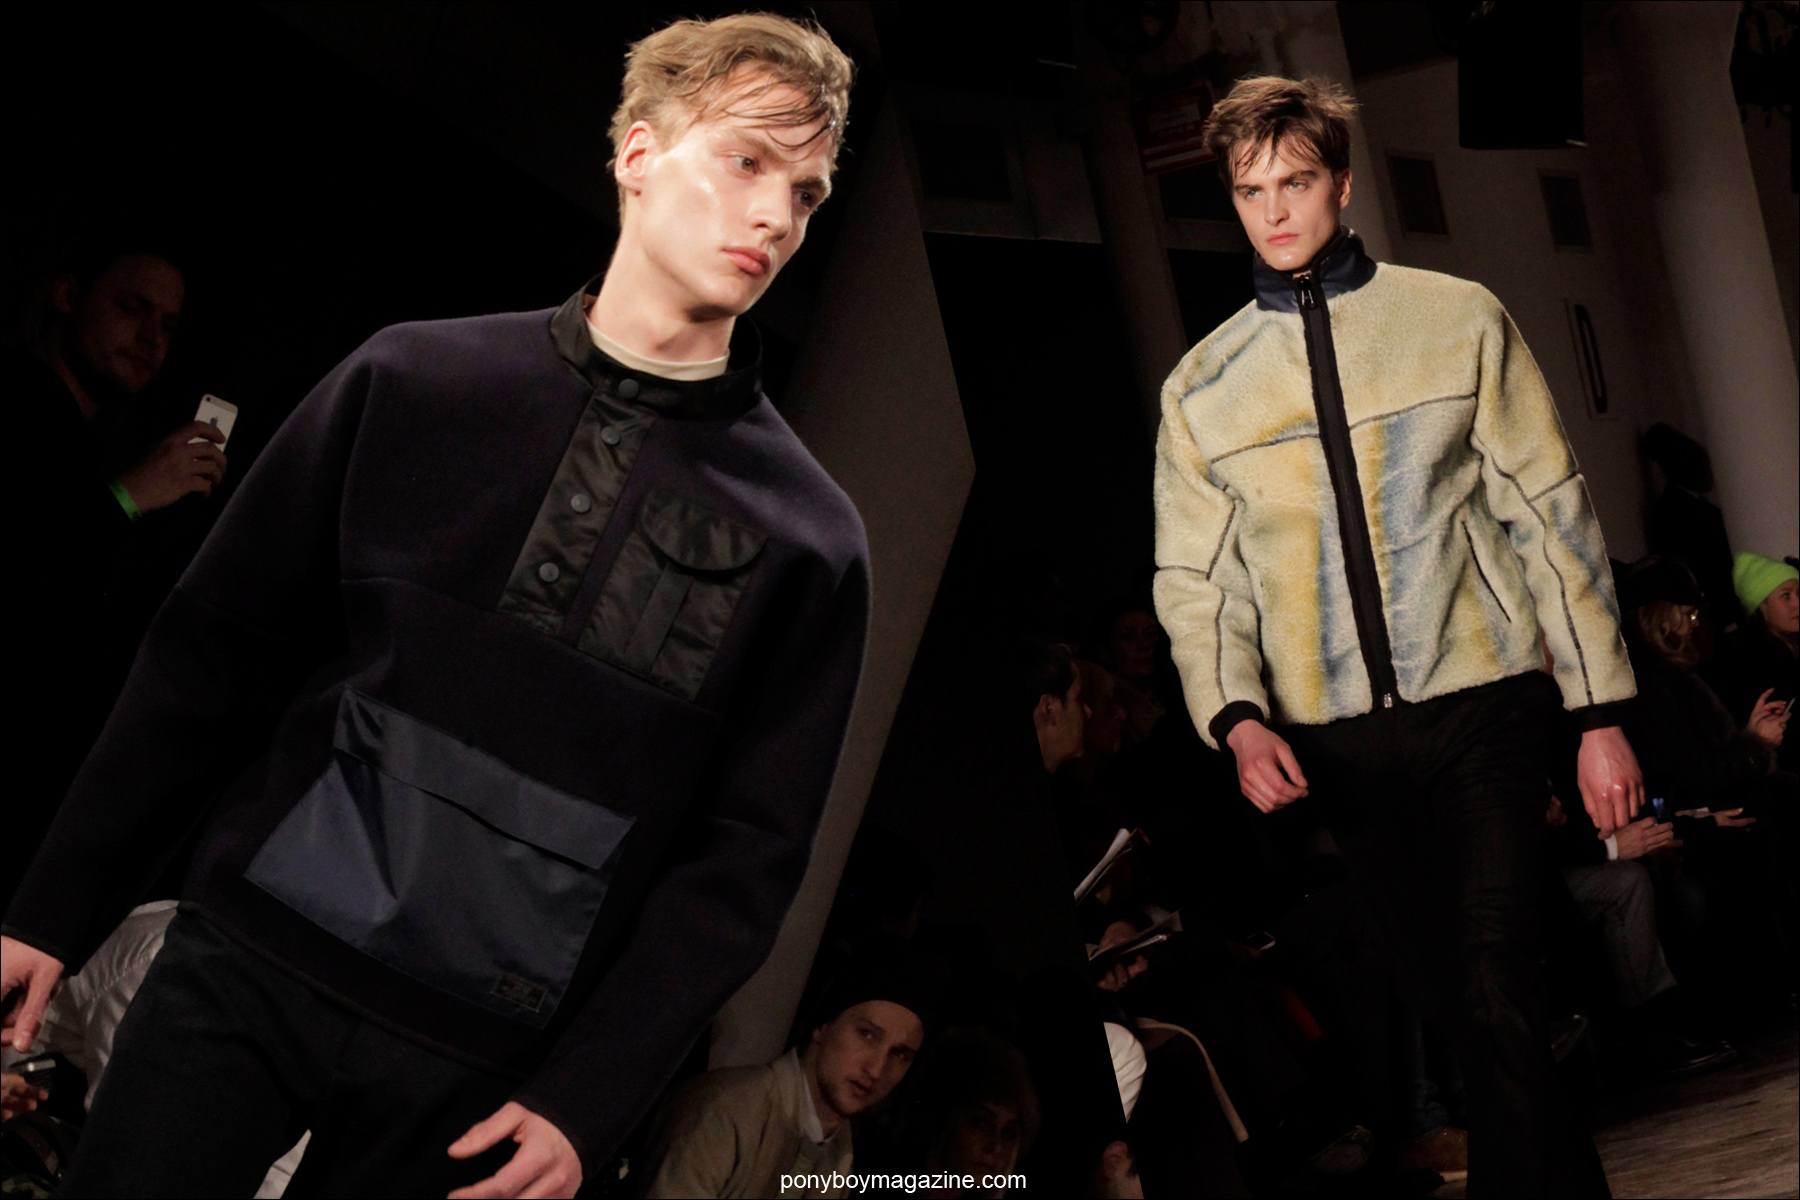 Models walk the runway for Patrik Ervell A/W 2014 Menswear Collection at Milk Studios in New York City. Photograph by Alexander Thompson for Ponyboy Magazine.